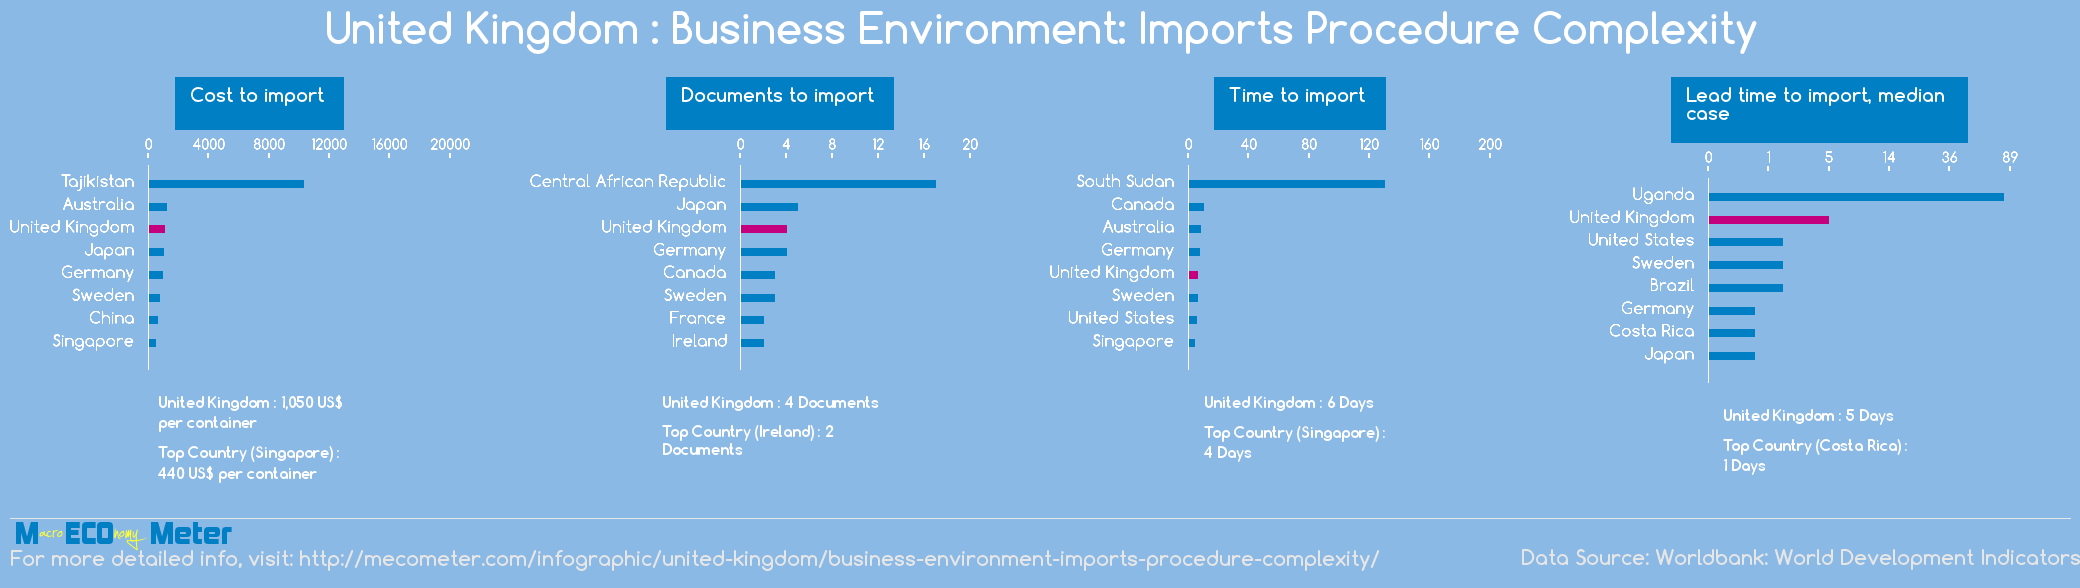 United Kingdom : Business Environment: Imports Procedure Complexity